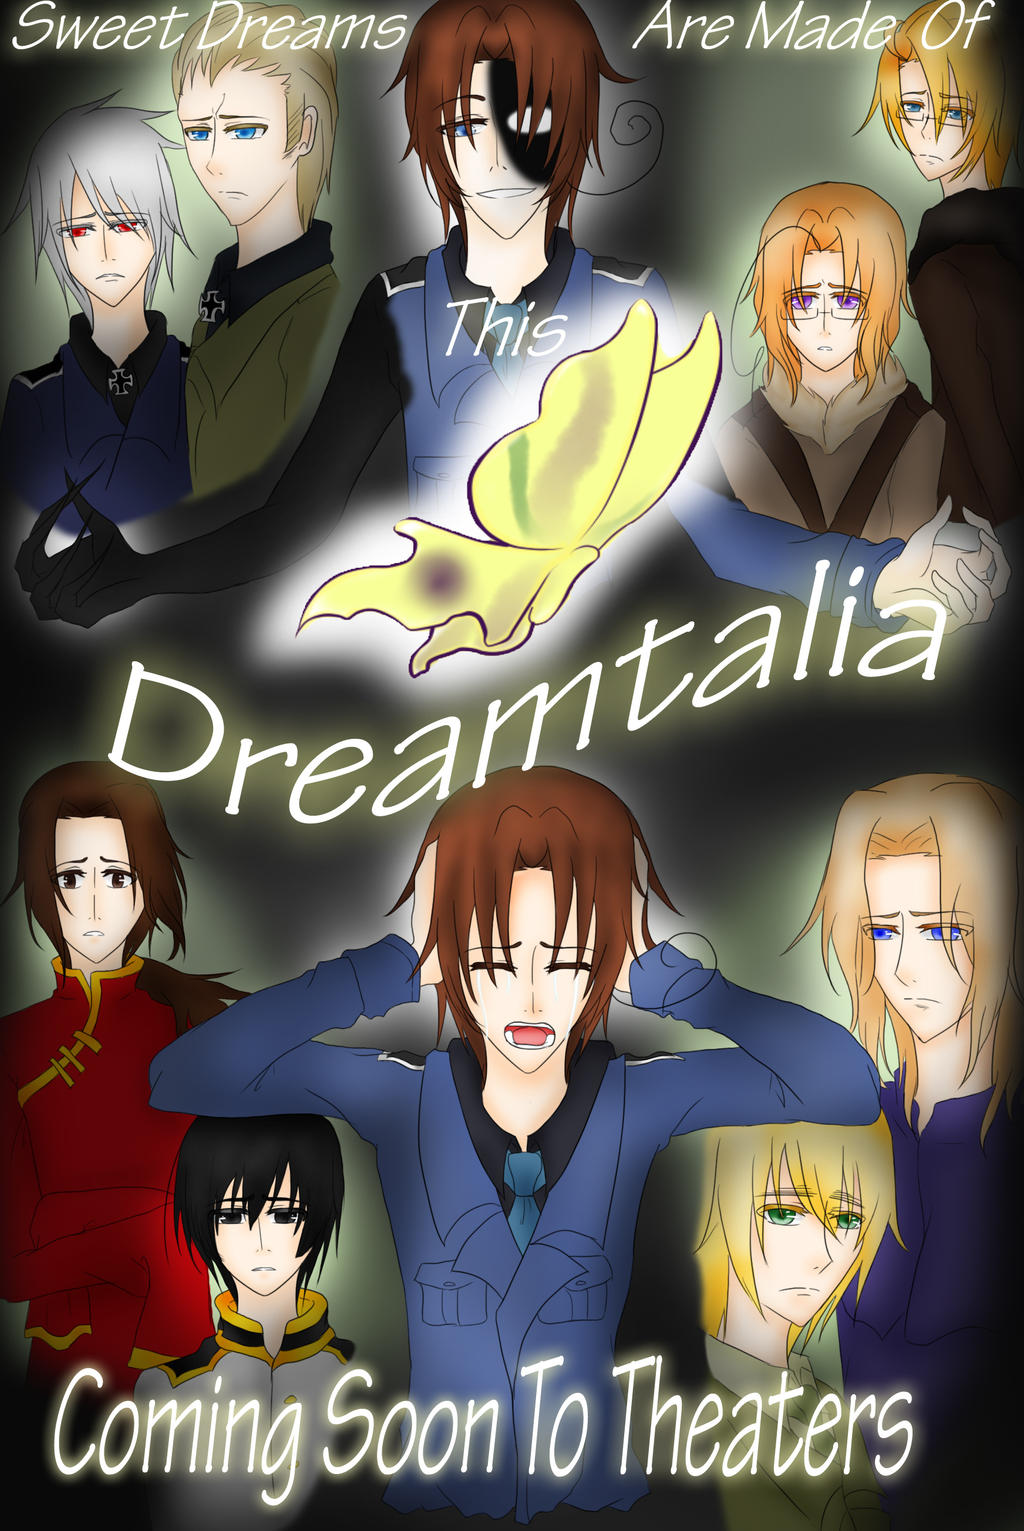 Dreamtalia The Movie by Kyoji-No